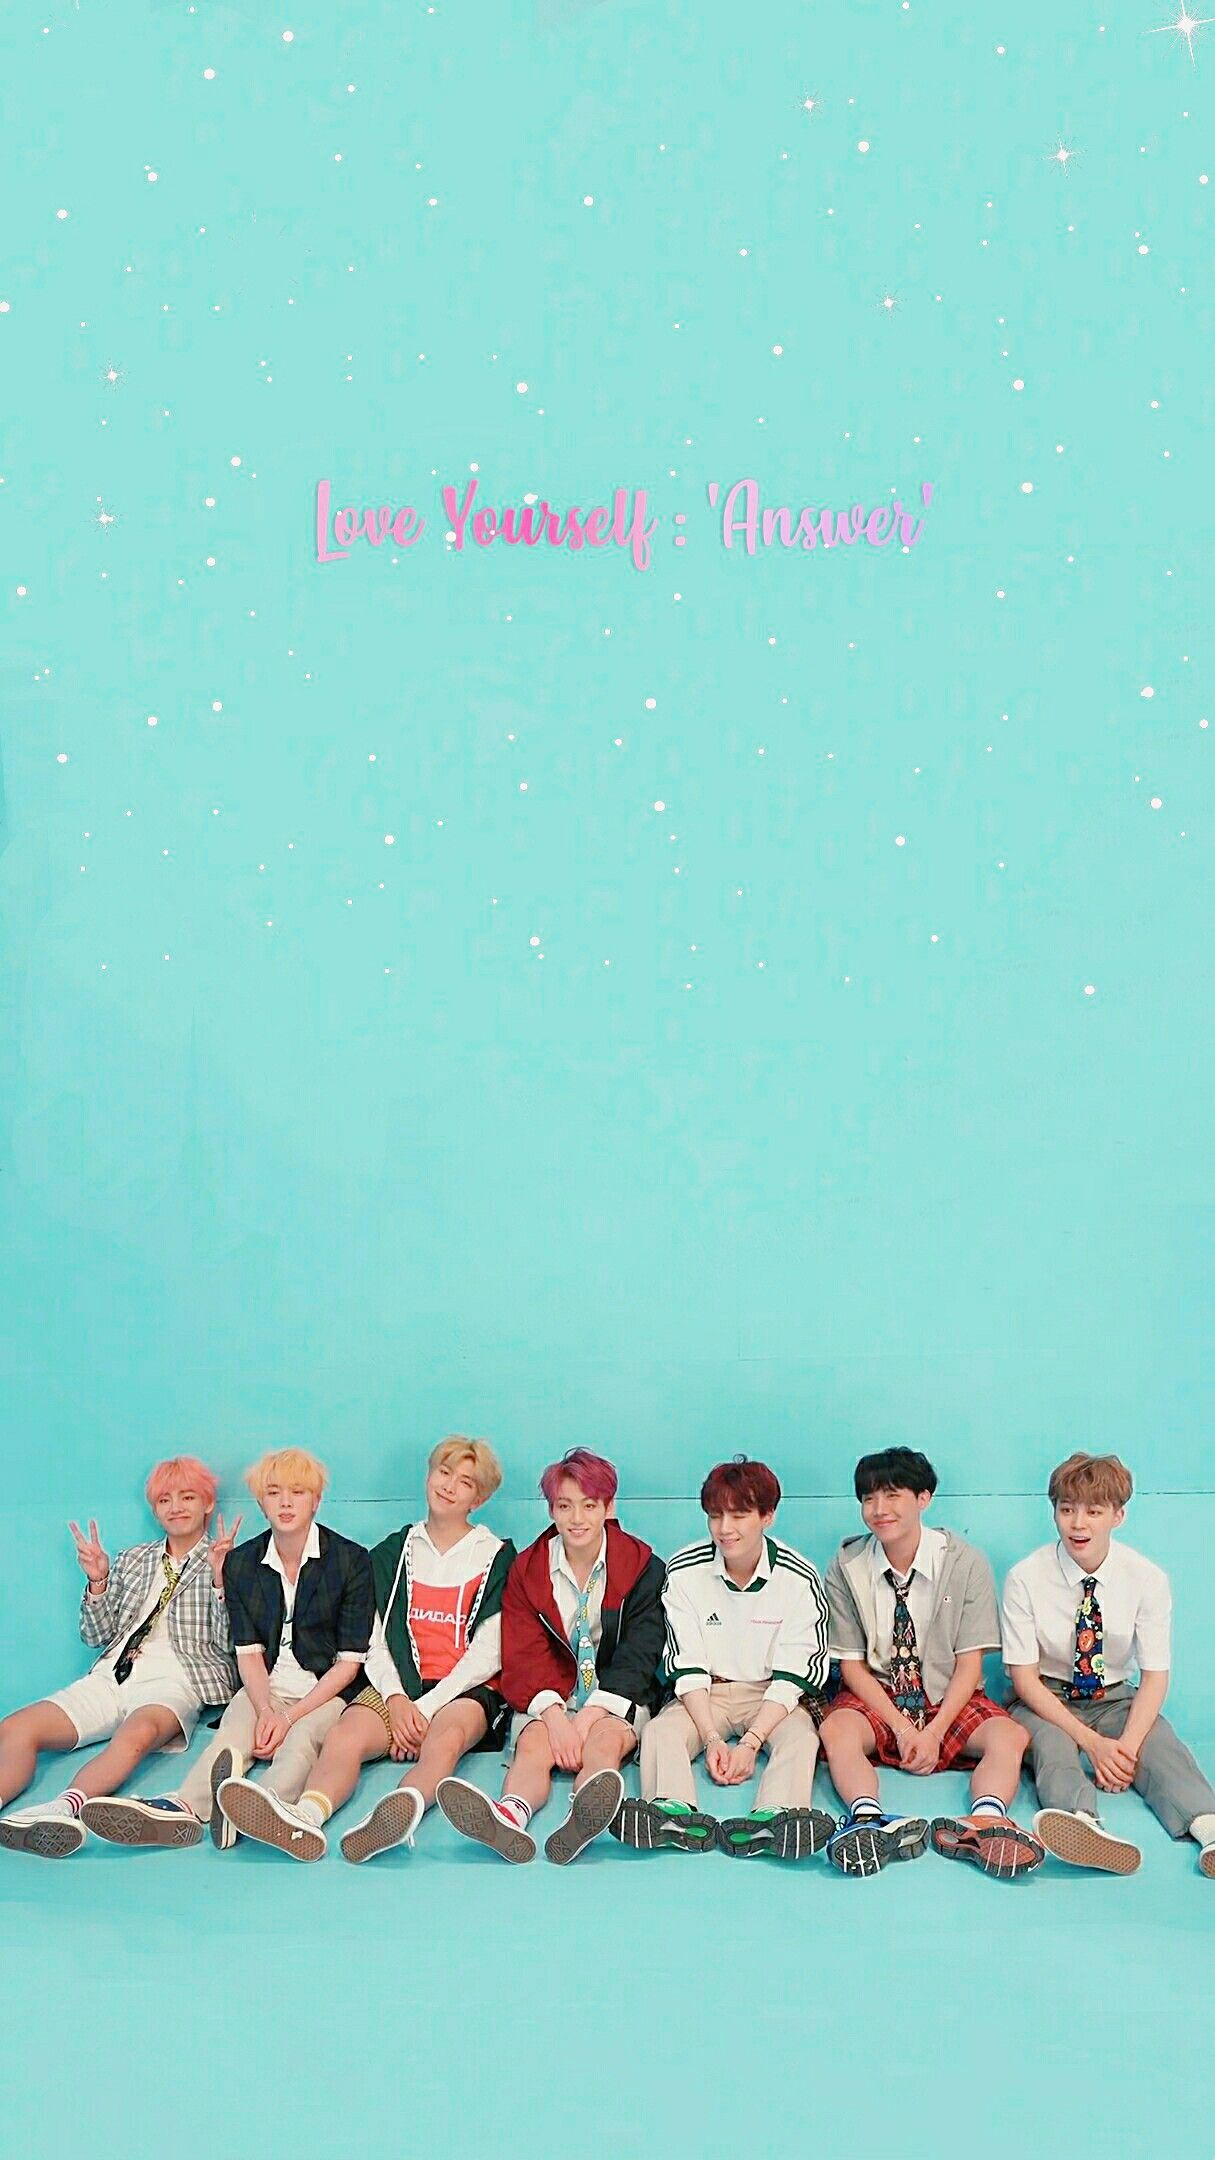 Bts Edits Bts Wallpapers Bts Love Yourself Answer Jacket Photoshoot Sketch Pls Make Sure To Follow Me Before U Save It Find More Instagram Scene Bts